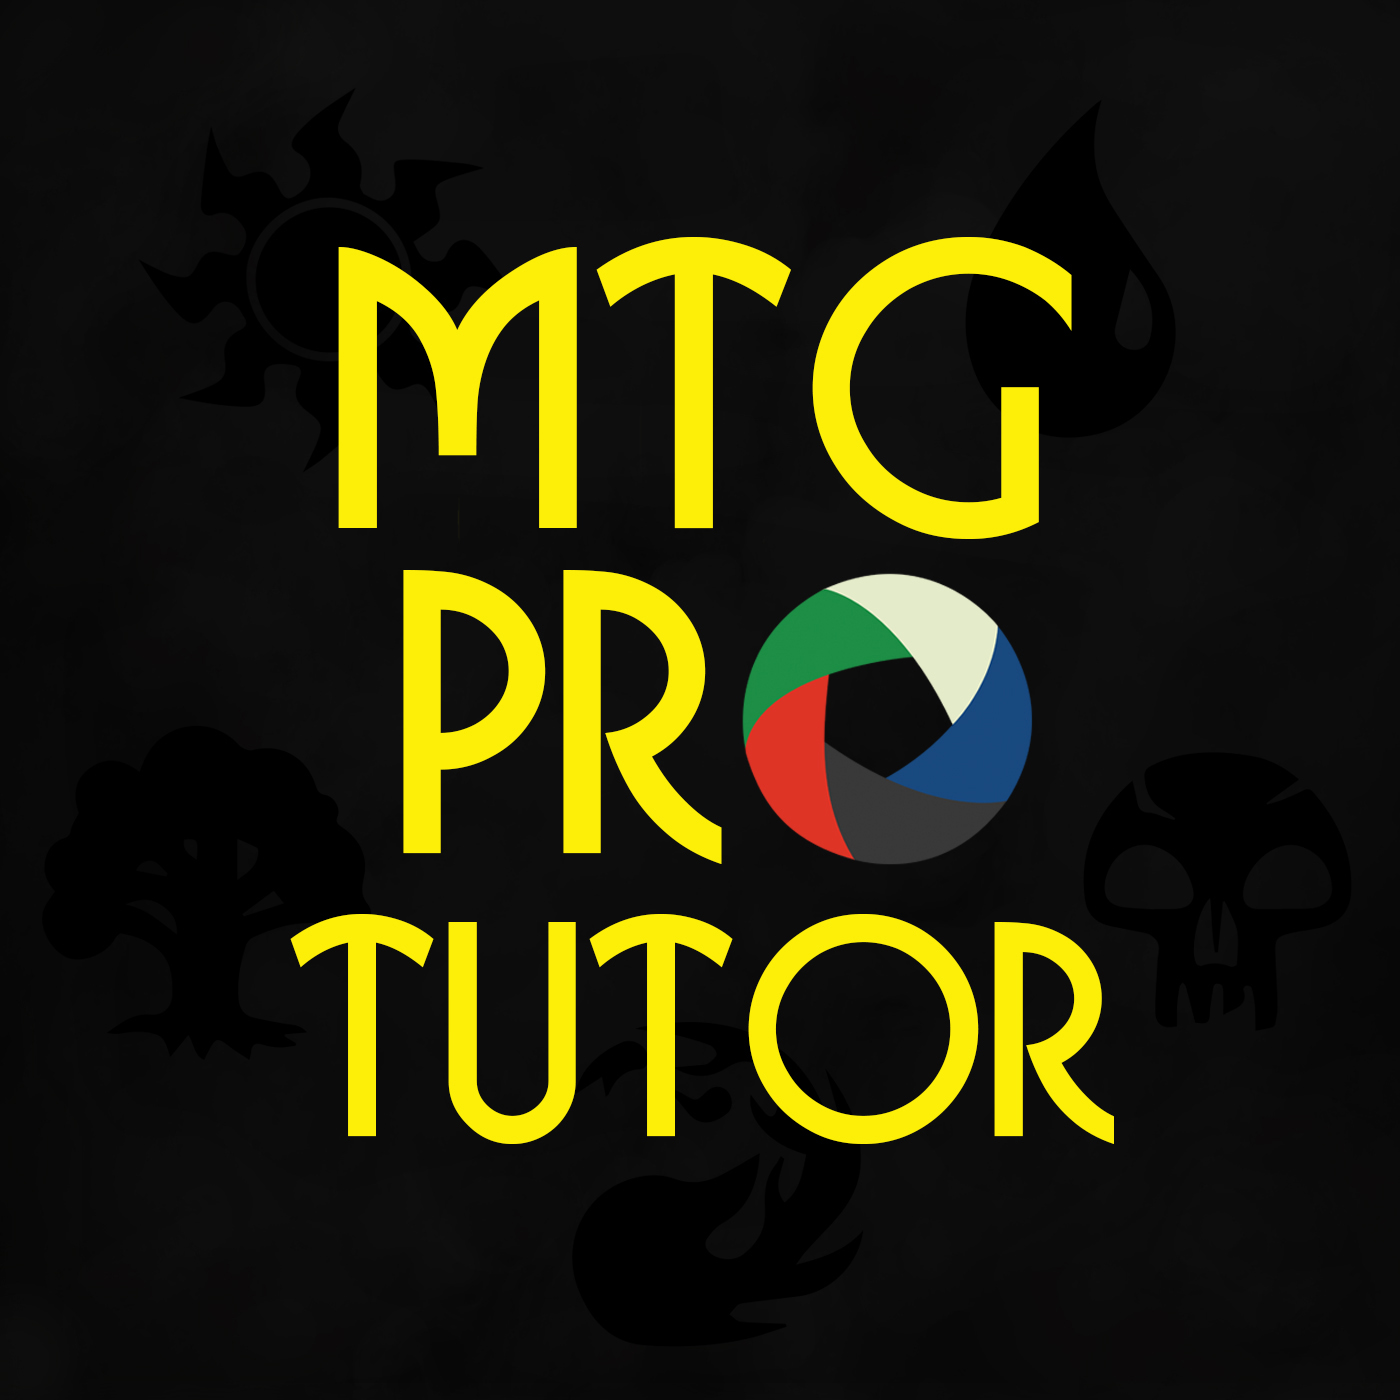 MTG Pro Tutor - Home of the Best Magic The Gathering Podcast